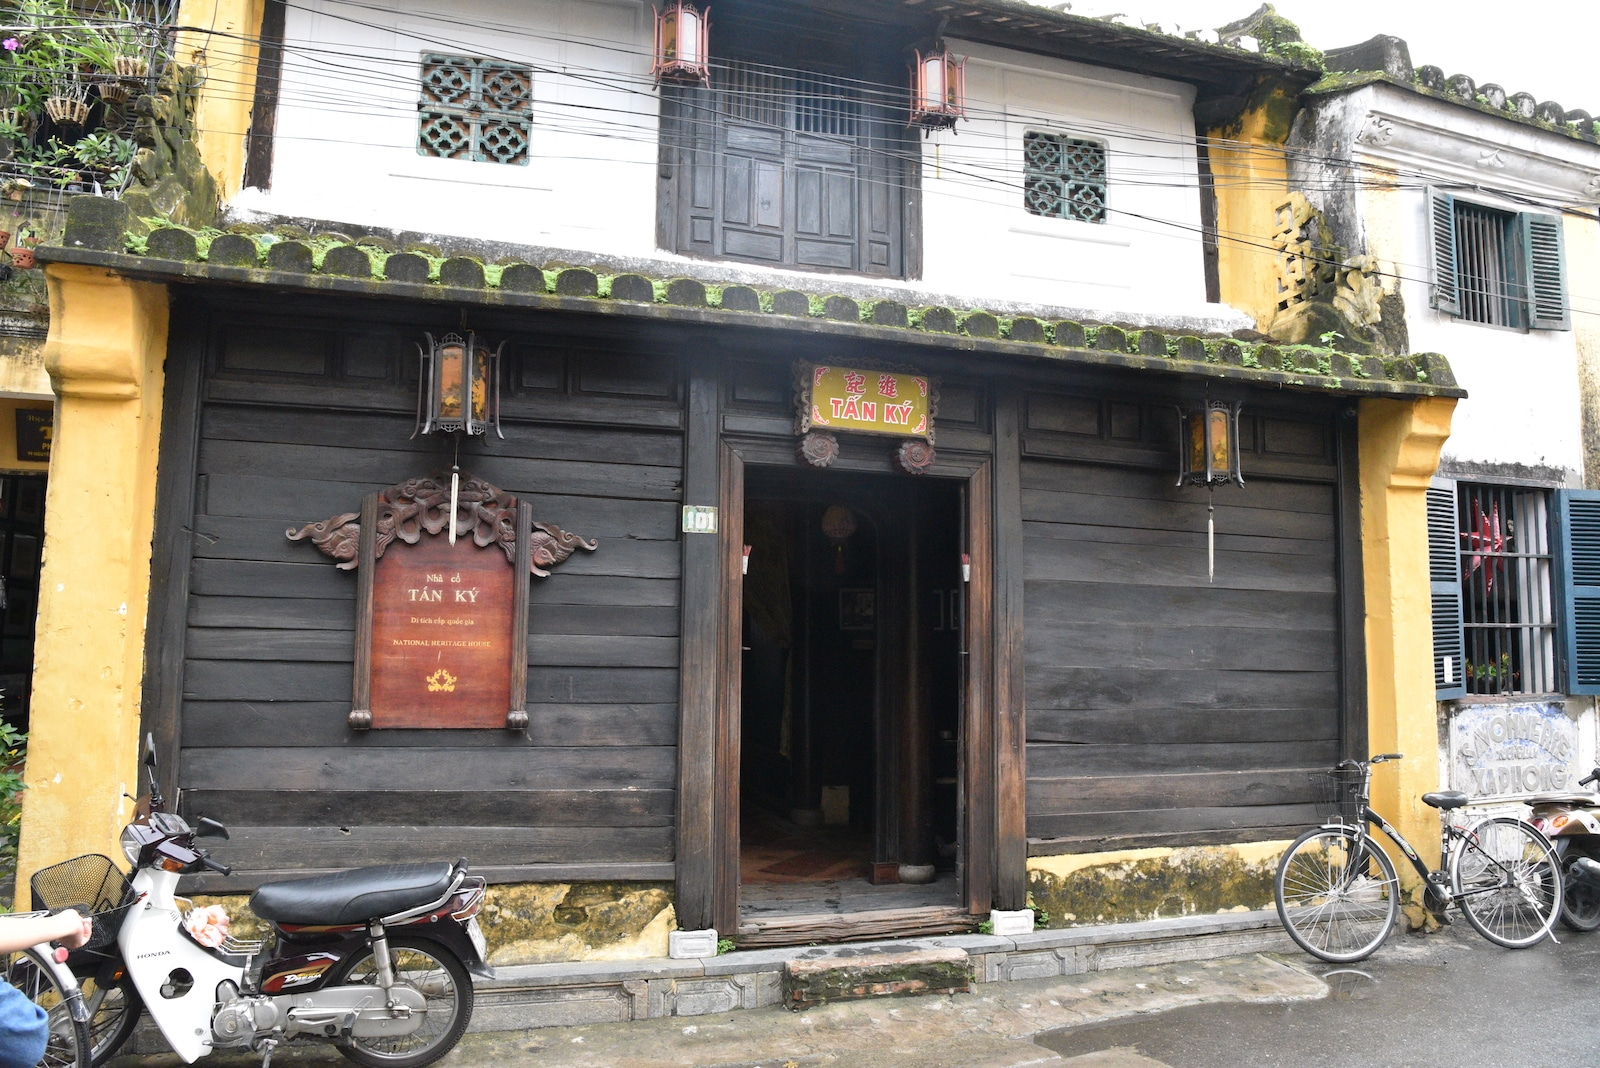 Old House of Tan Ky in Hoi An